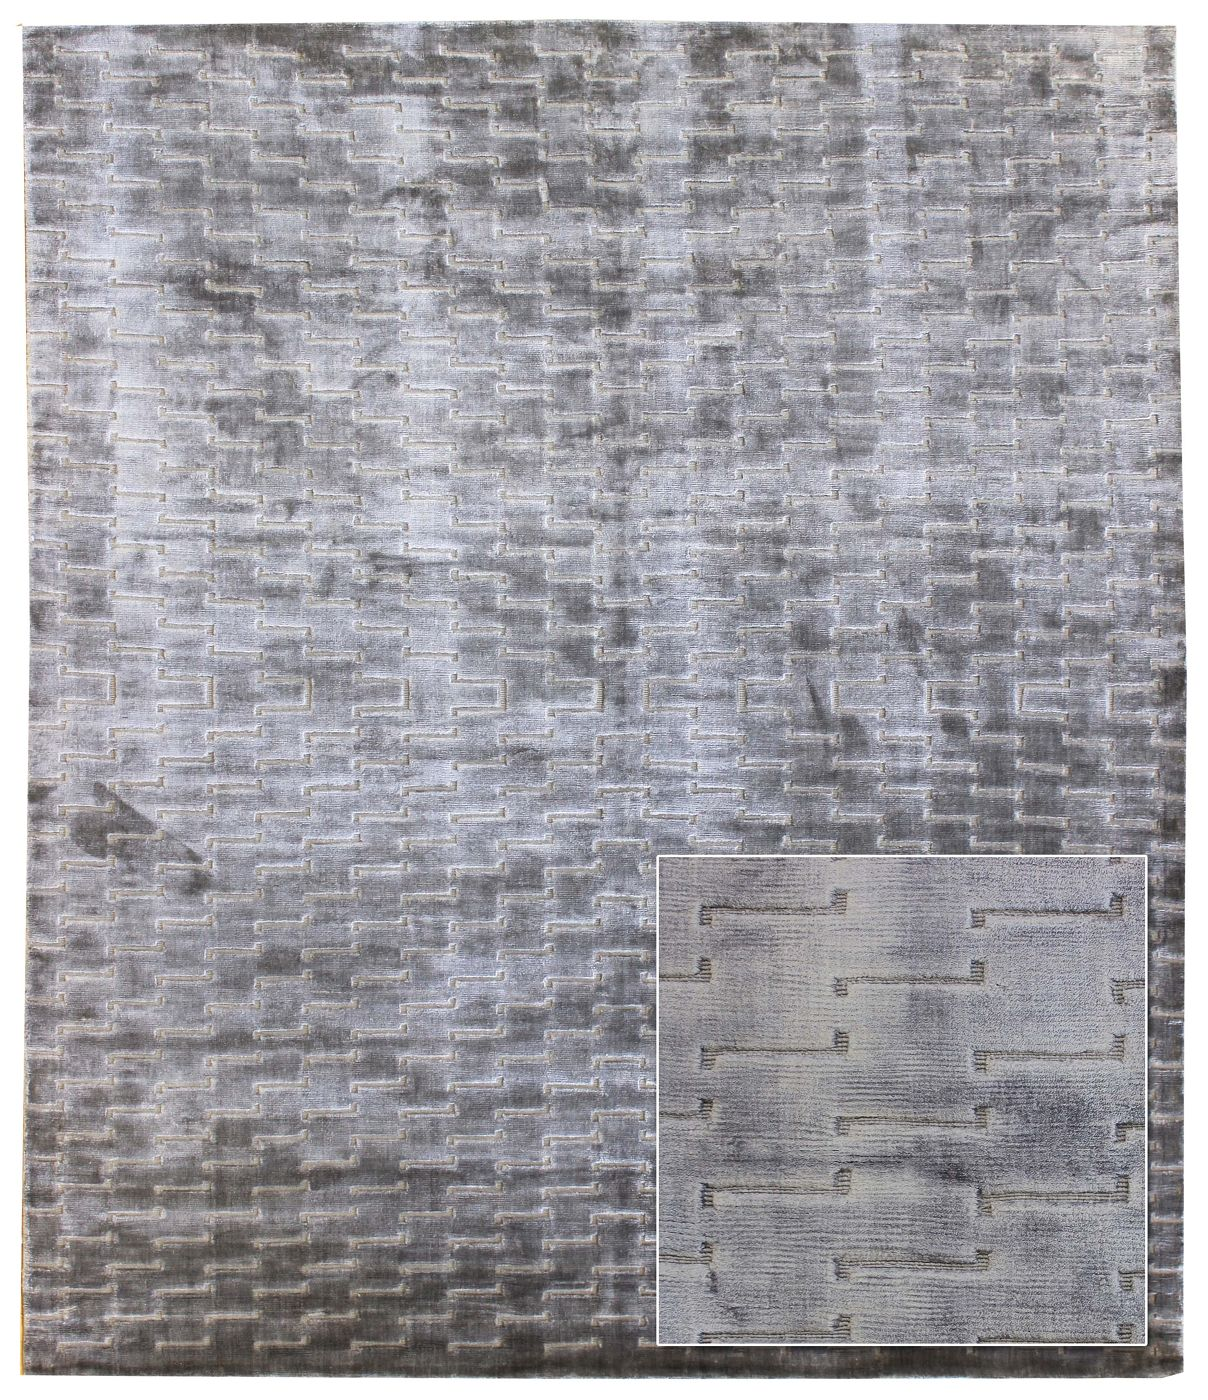 Step Up Handwoven Contemporary Rug